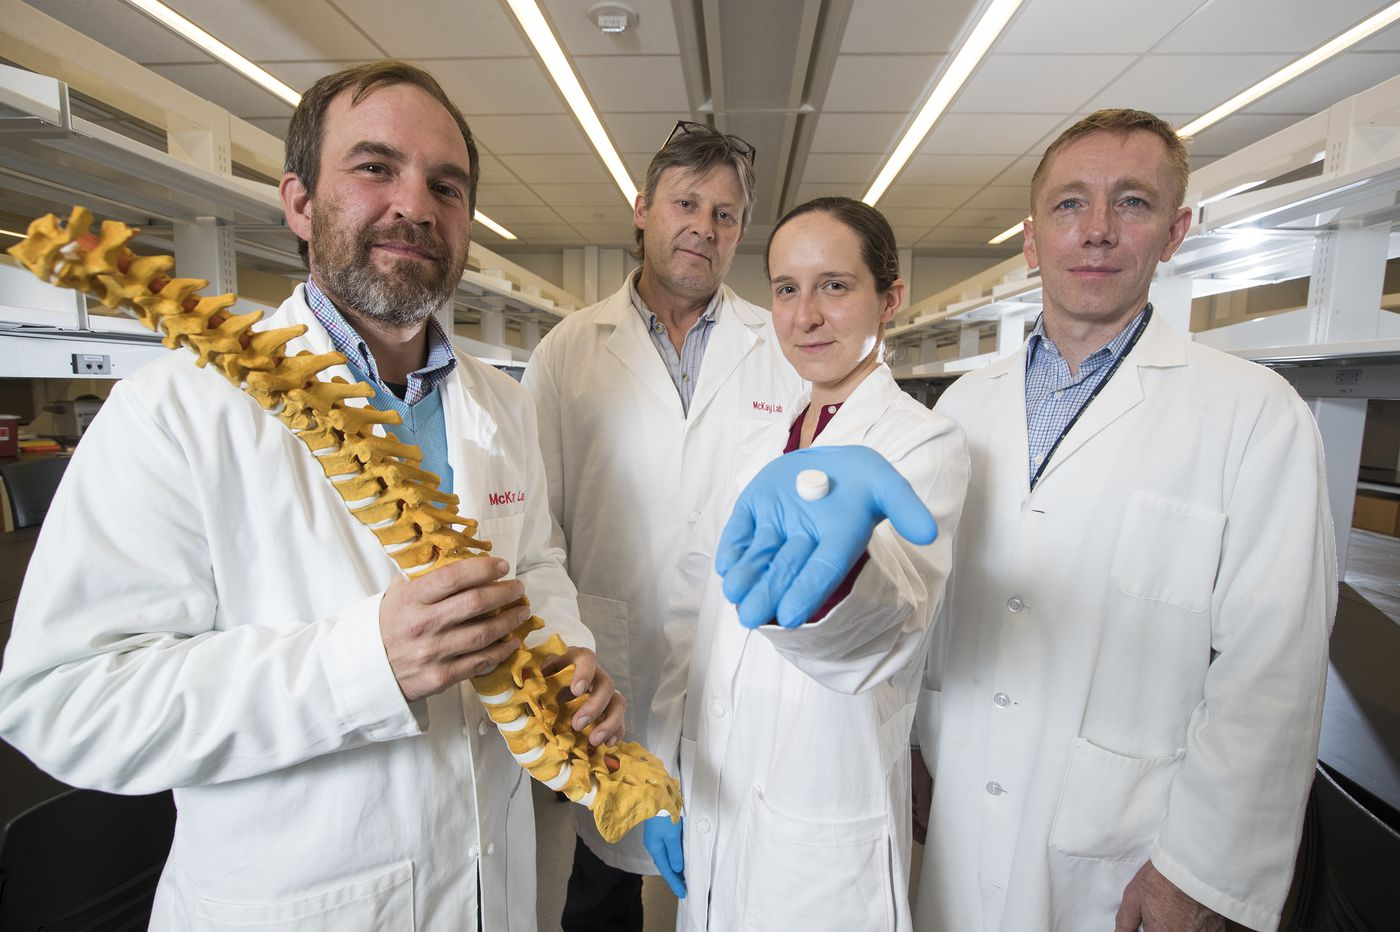 A fix for back pain? Scientists test bio-synthetic discs in goats.